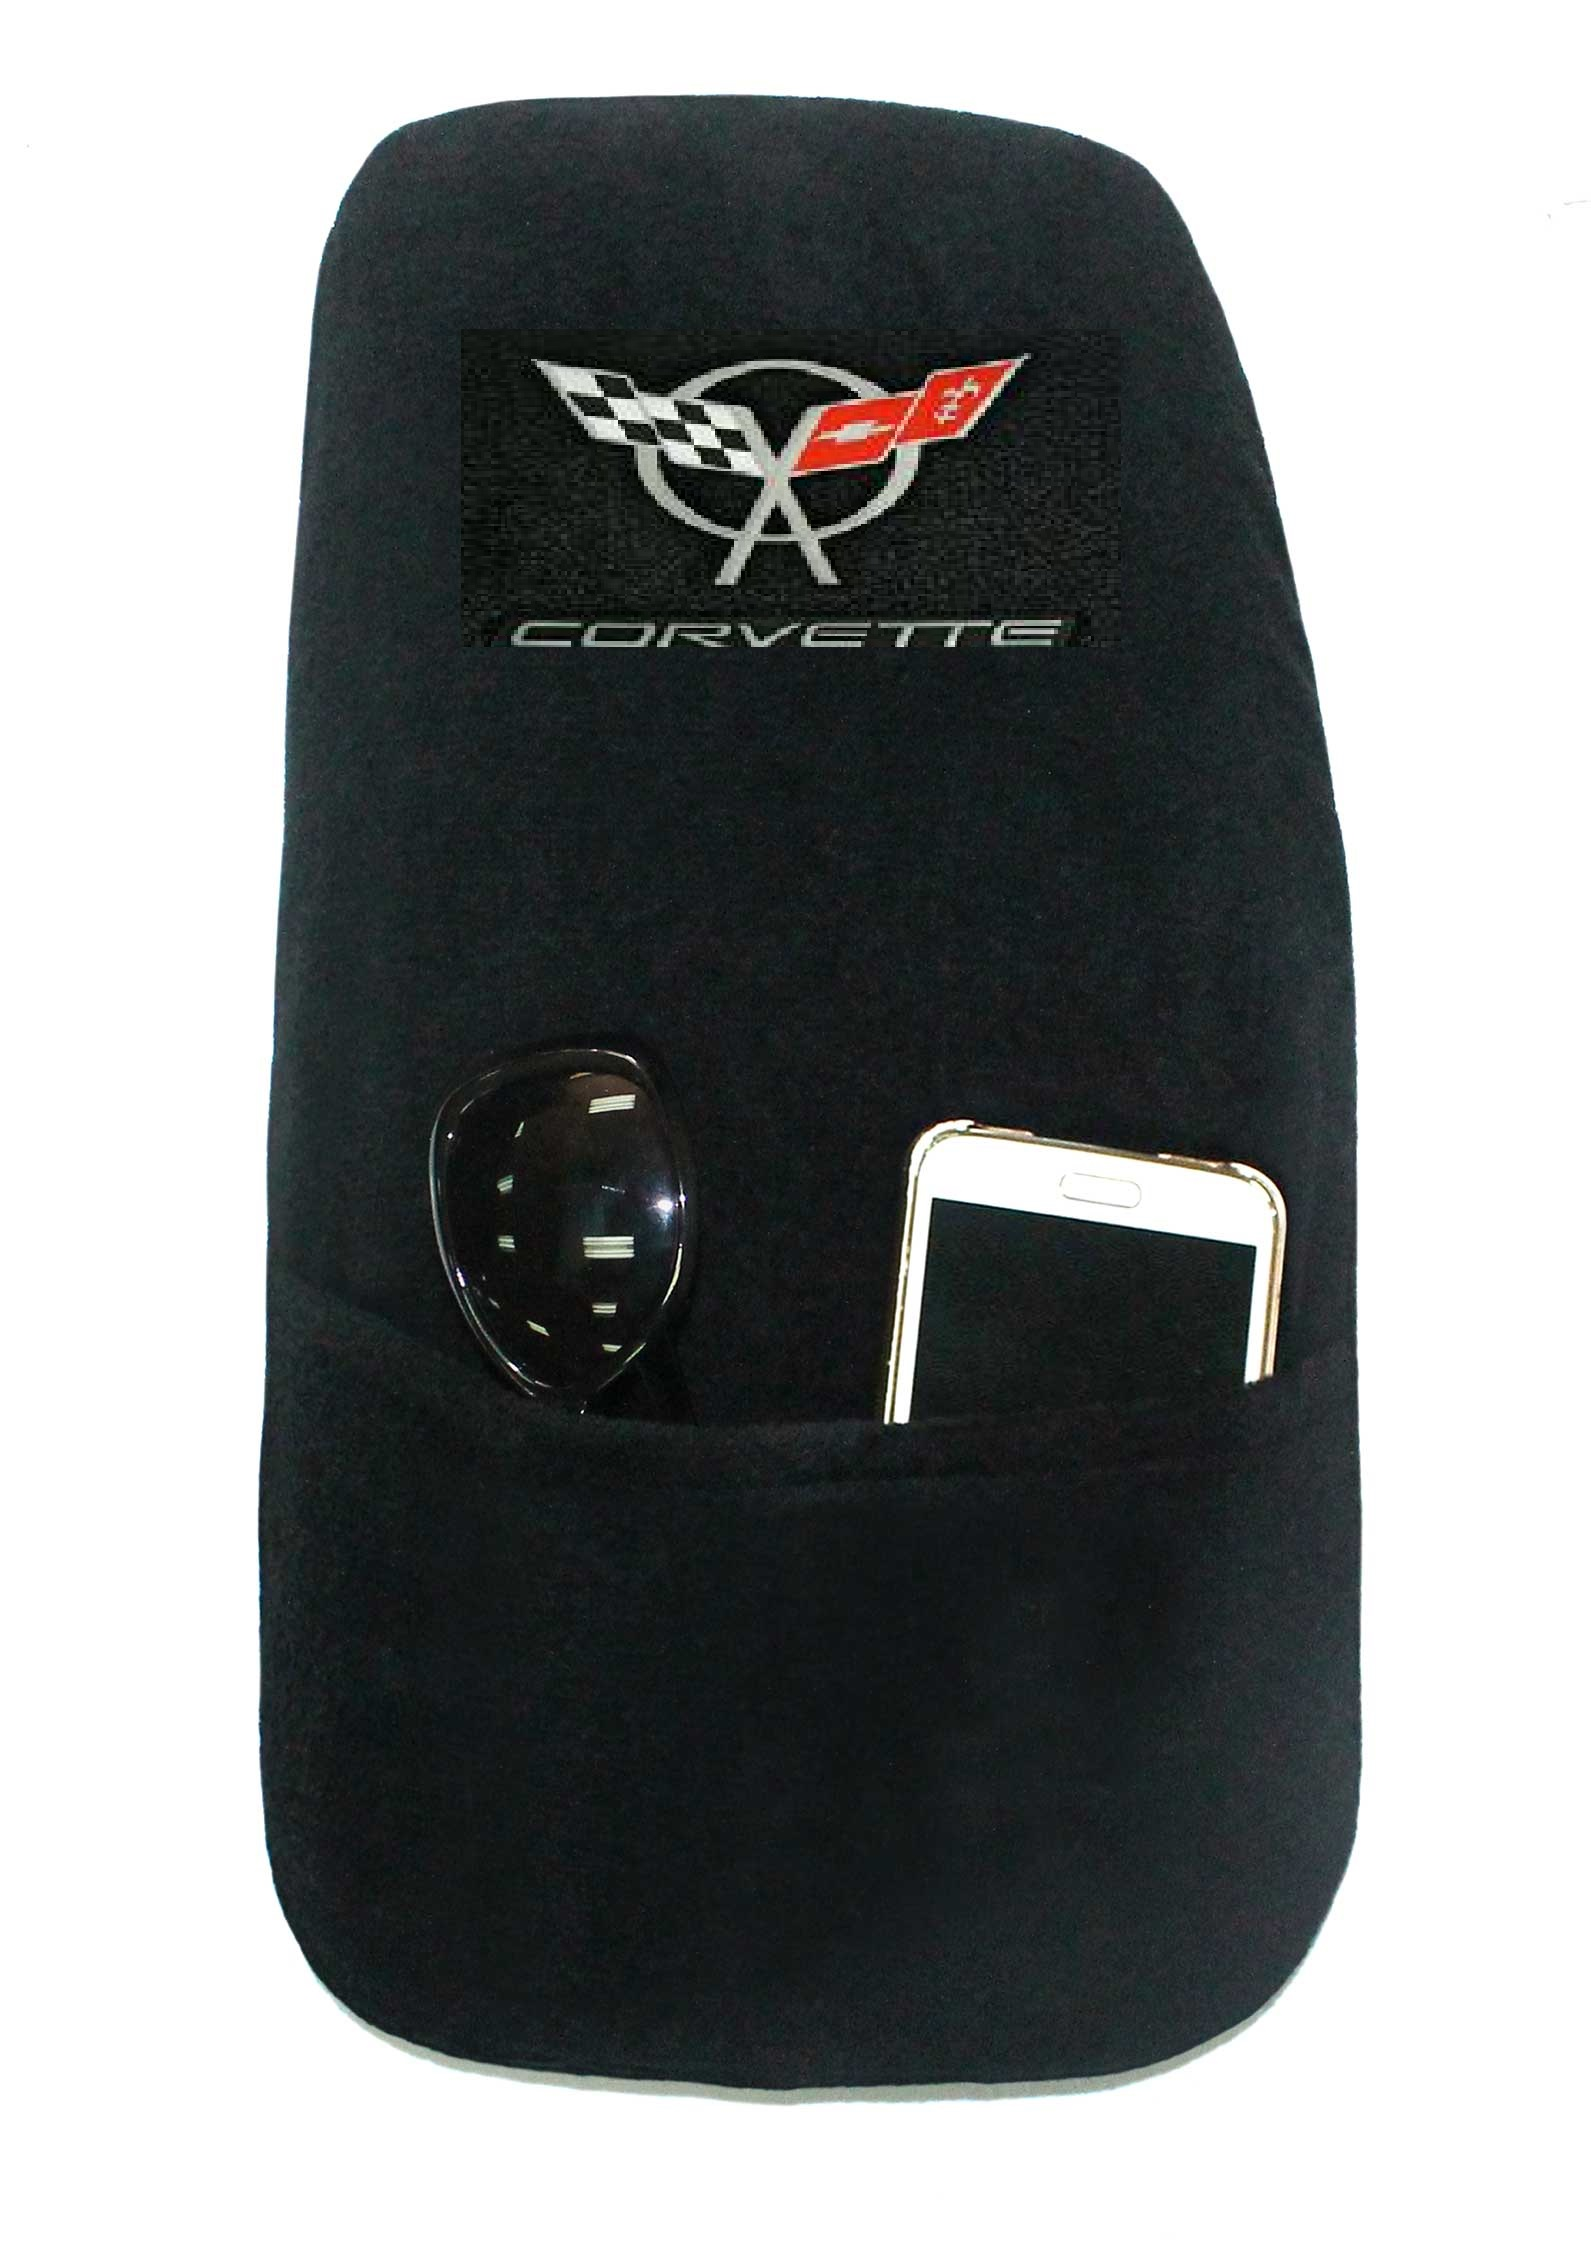 1997-2004 C5 Corvette Embroidered Emblem Center Console Cover